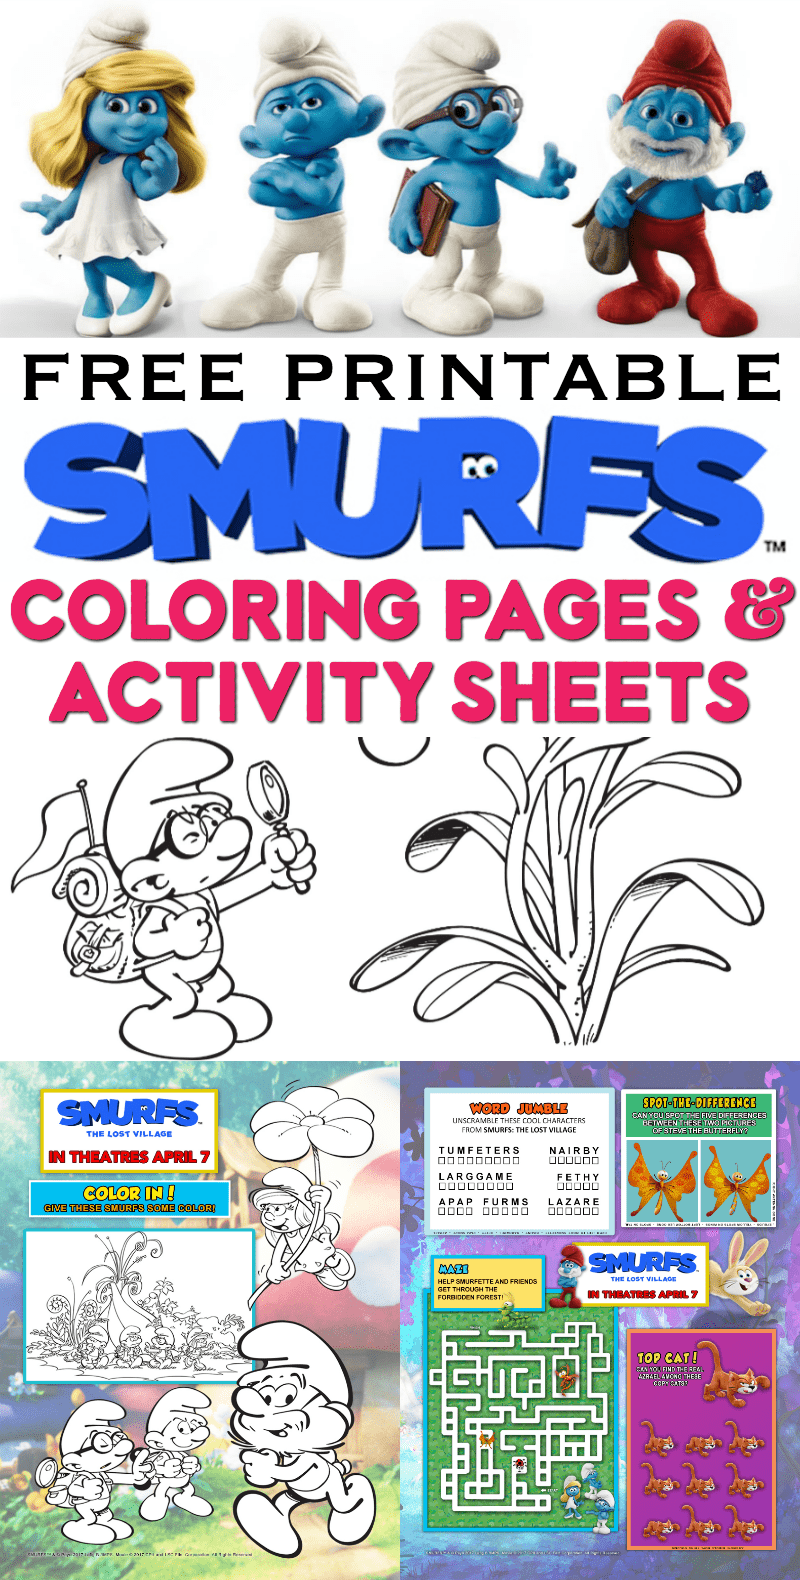 smurfs coloring pages activity sheets